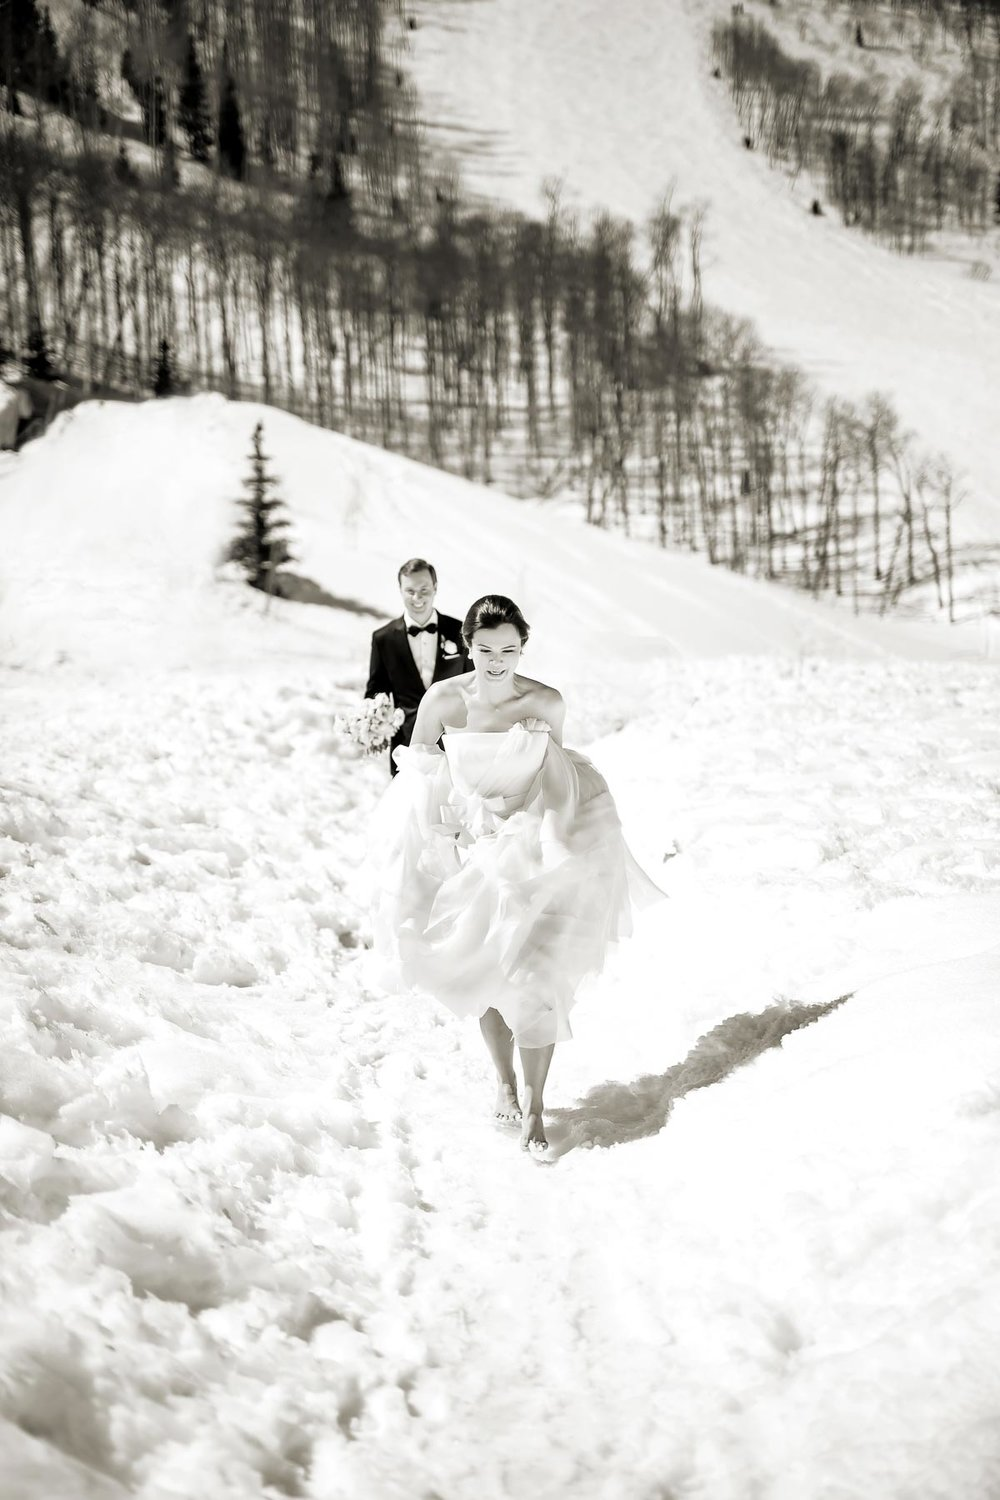 moutain-winter-weddings_deer-valley-weddings_pepper_nix_photography-32.jpg